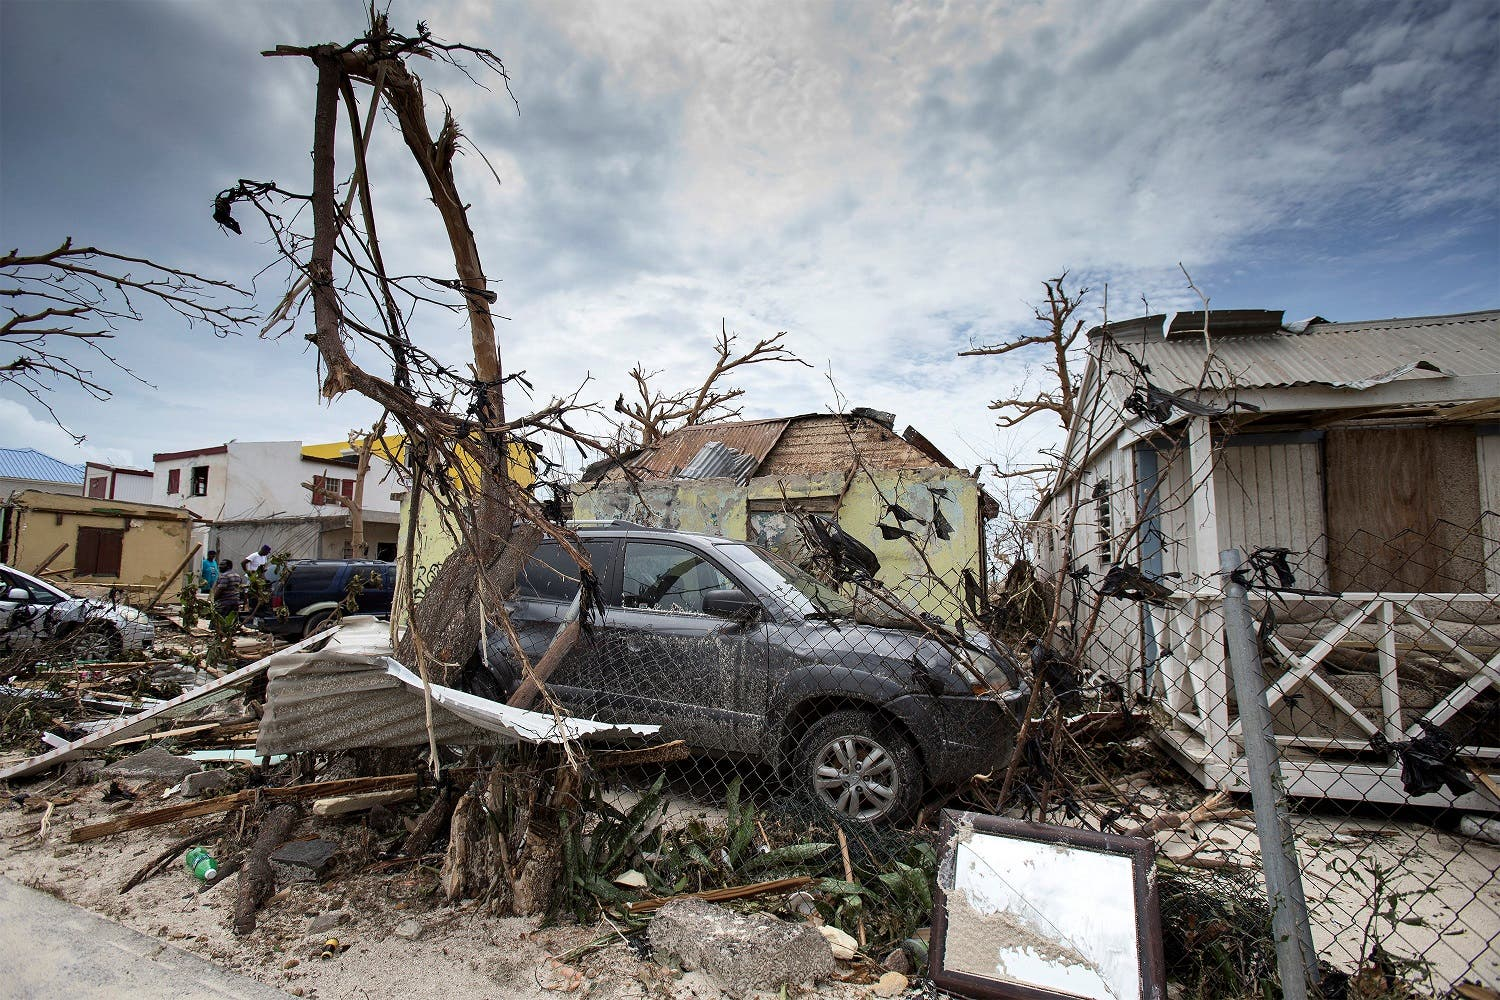 View of the aftermath of Hurricane Irma on Sint Maarten Dutch part of Saint Martin island in the Carribean September 7, 2017. (Reuters)